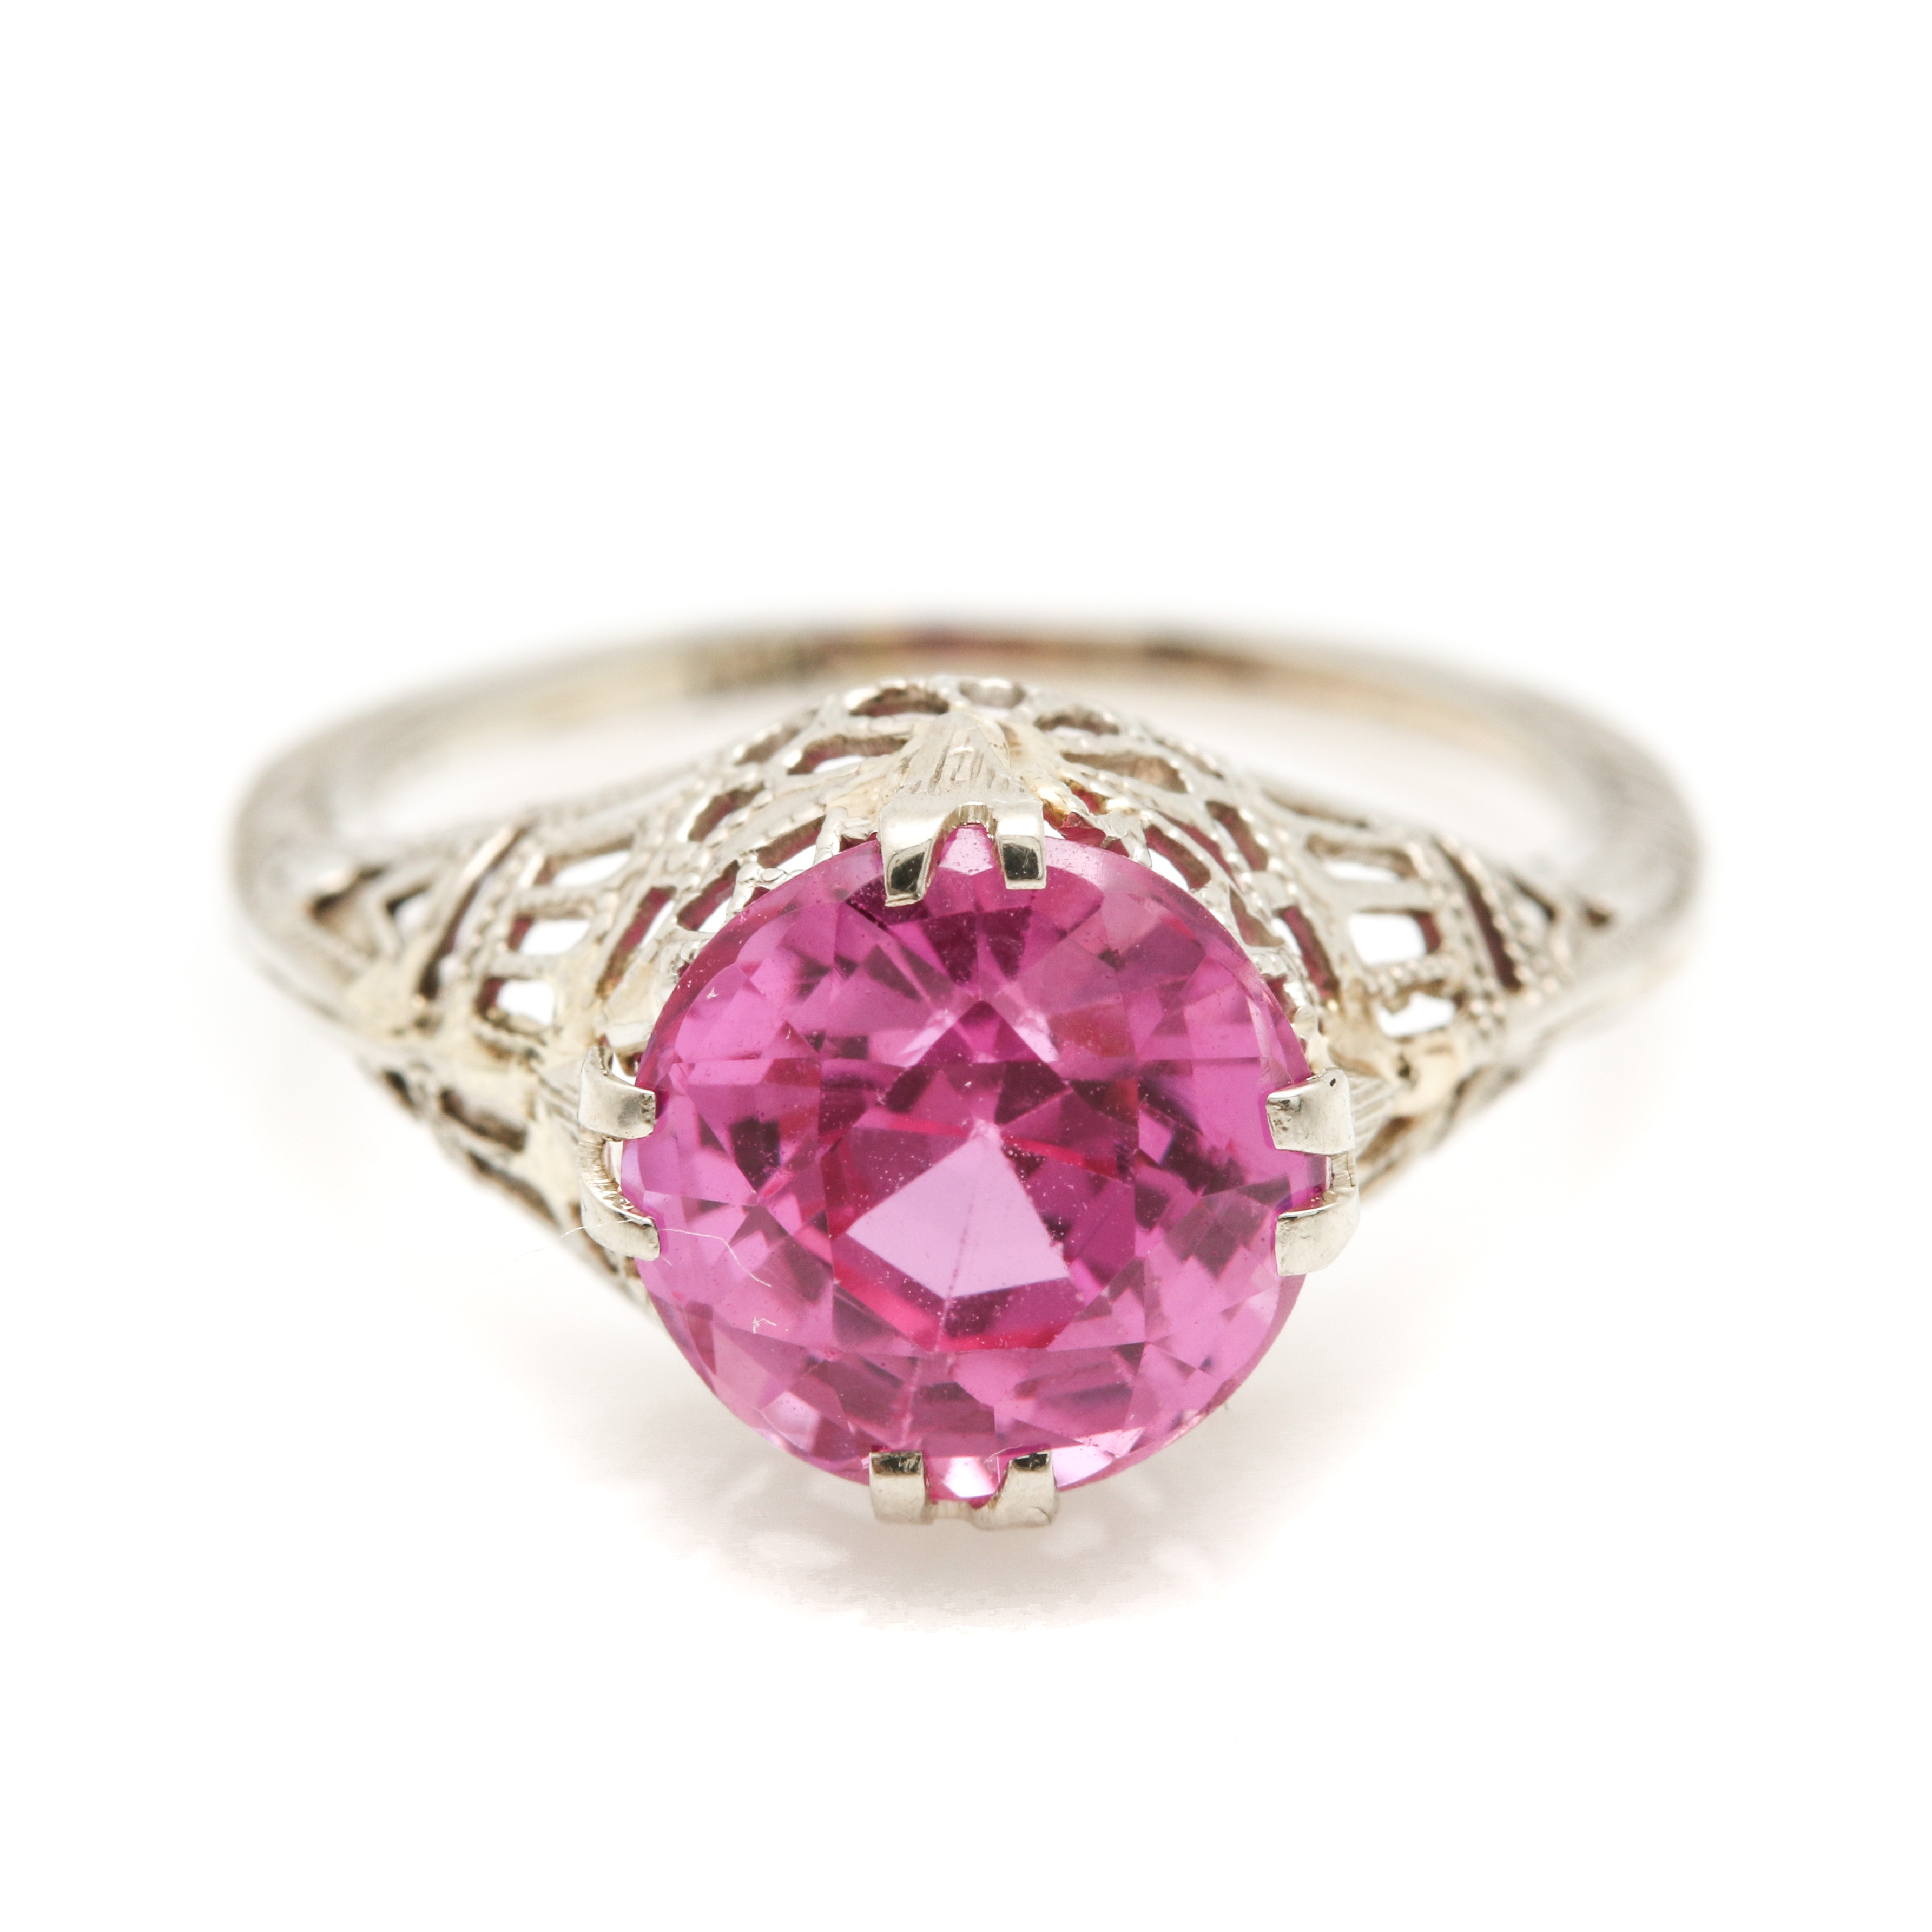 14K White Gold and Pink Sapphire Ring